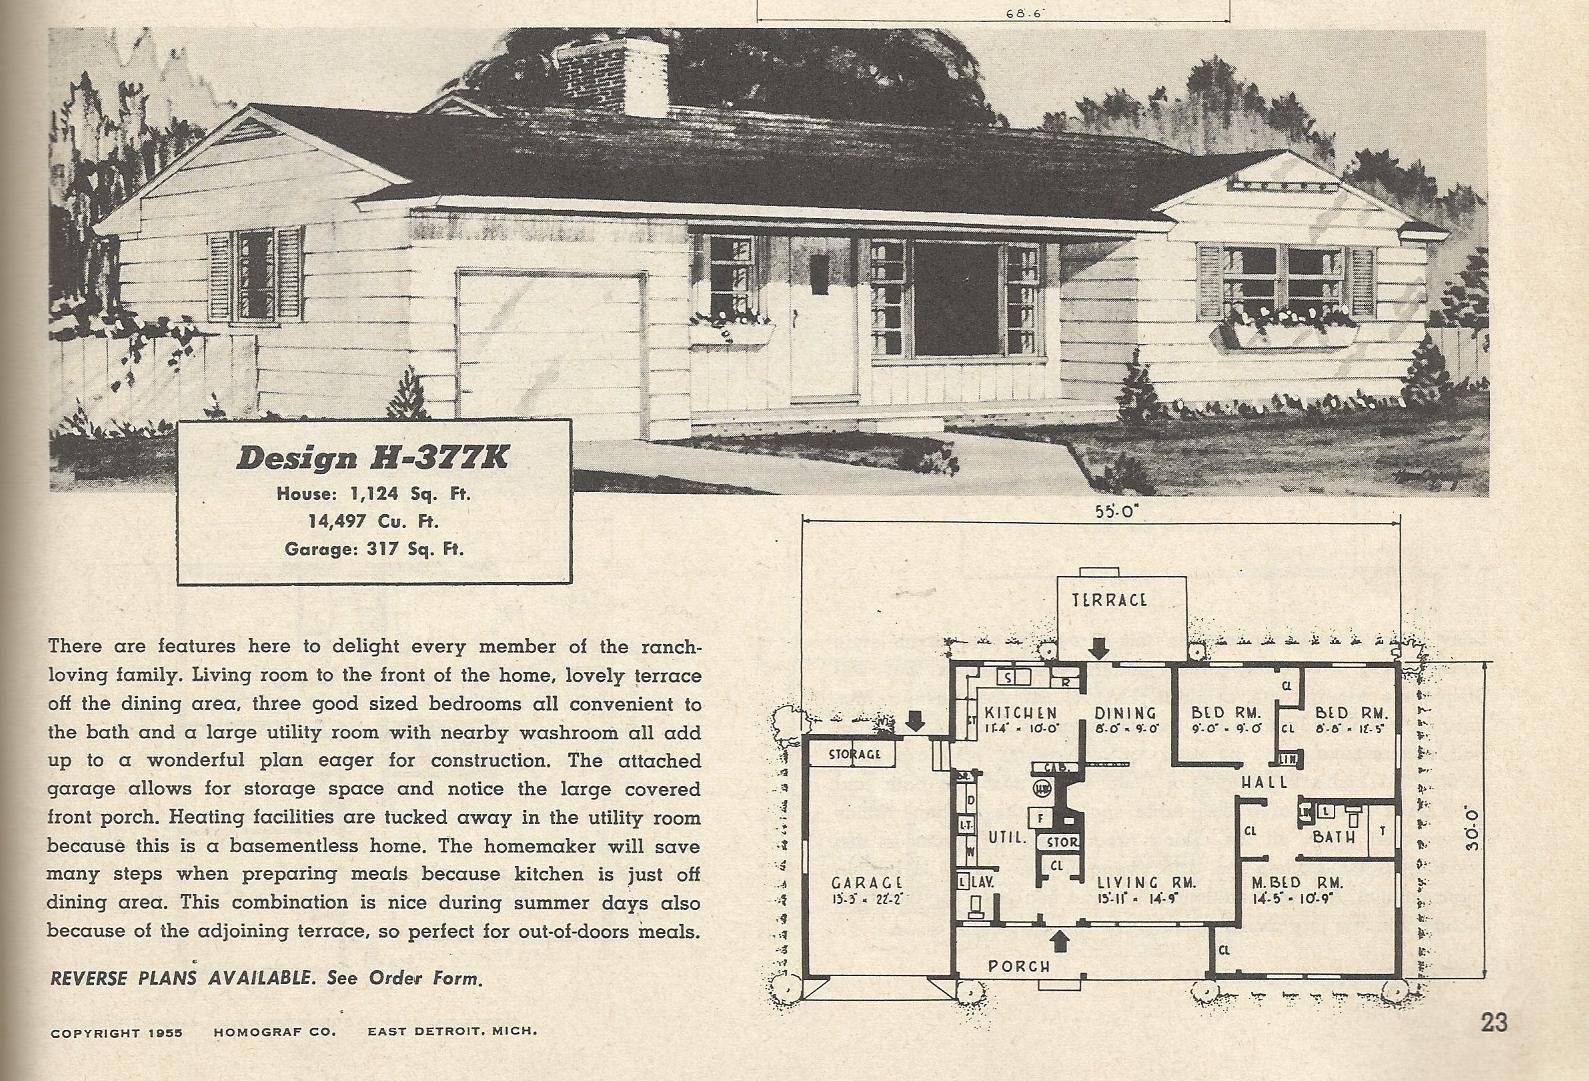 Vintage House Plans 377 on Rambler House Plan